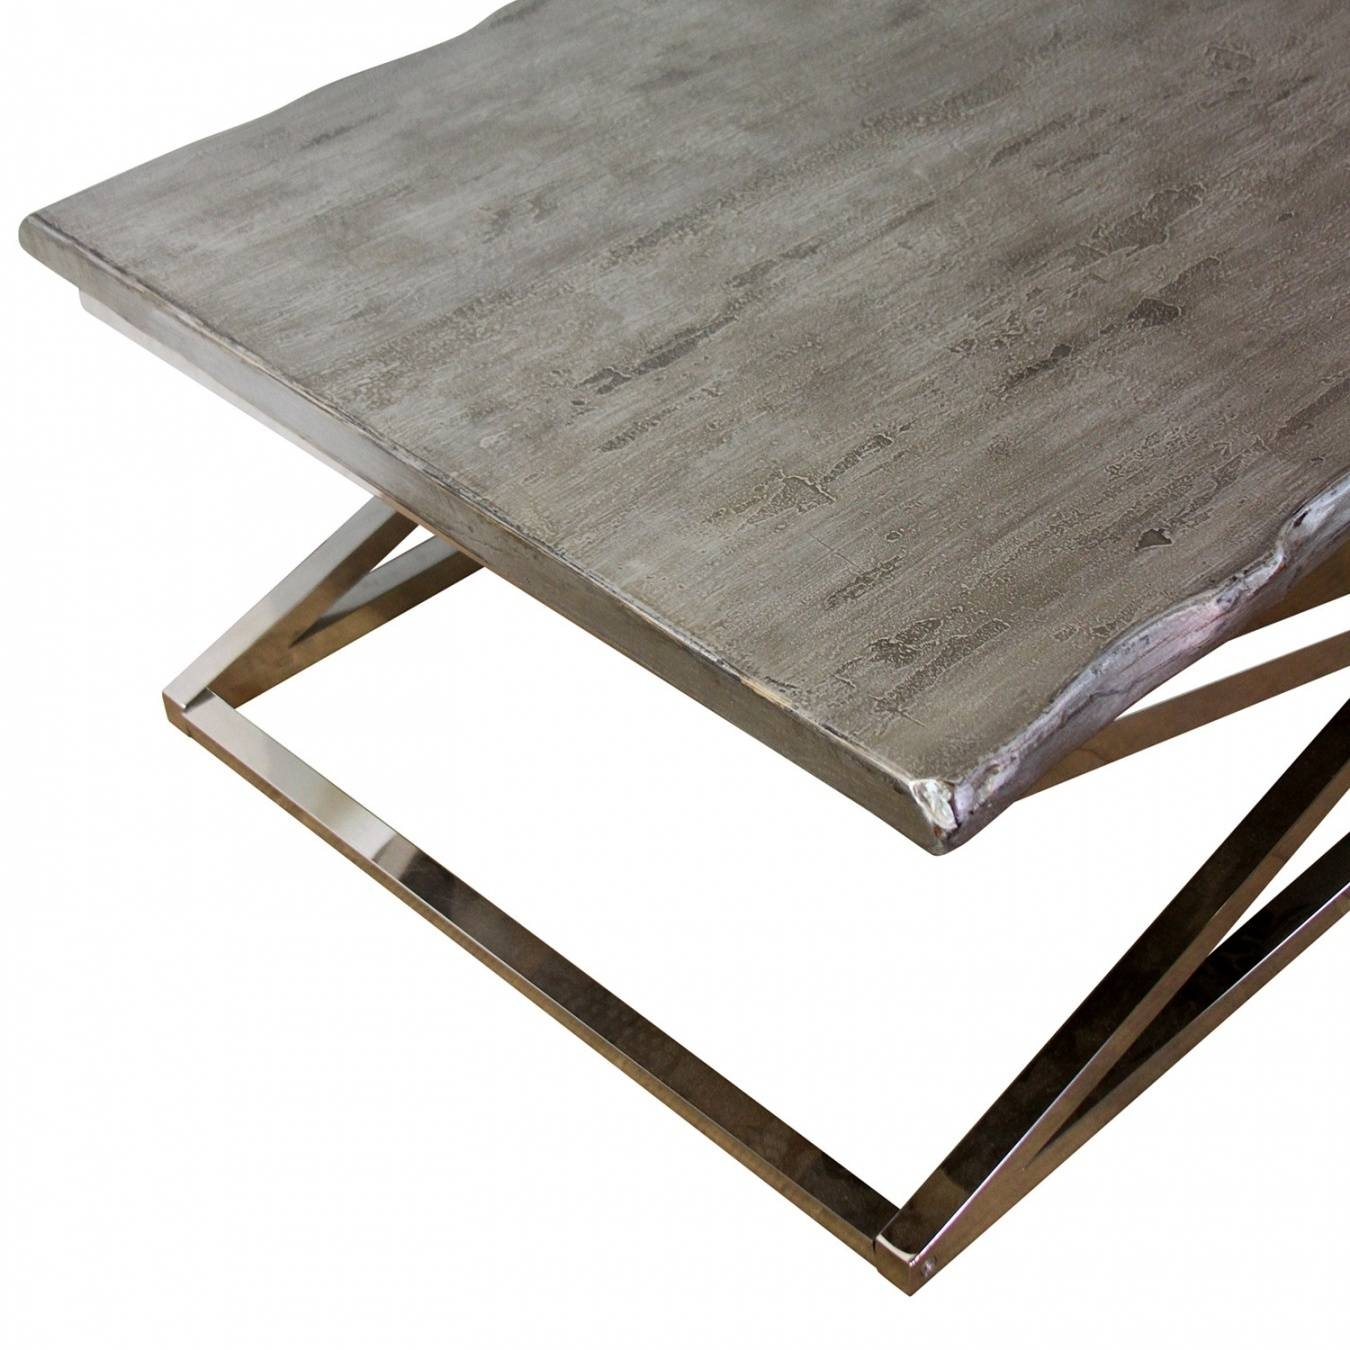 Wood And Chrome Coffee Table – Home Salers with Chrome And Wood Coffee Tables (Image 29 of 30)